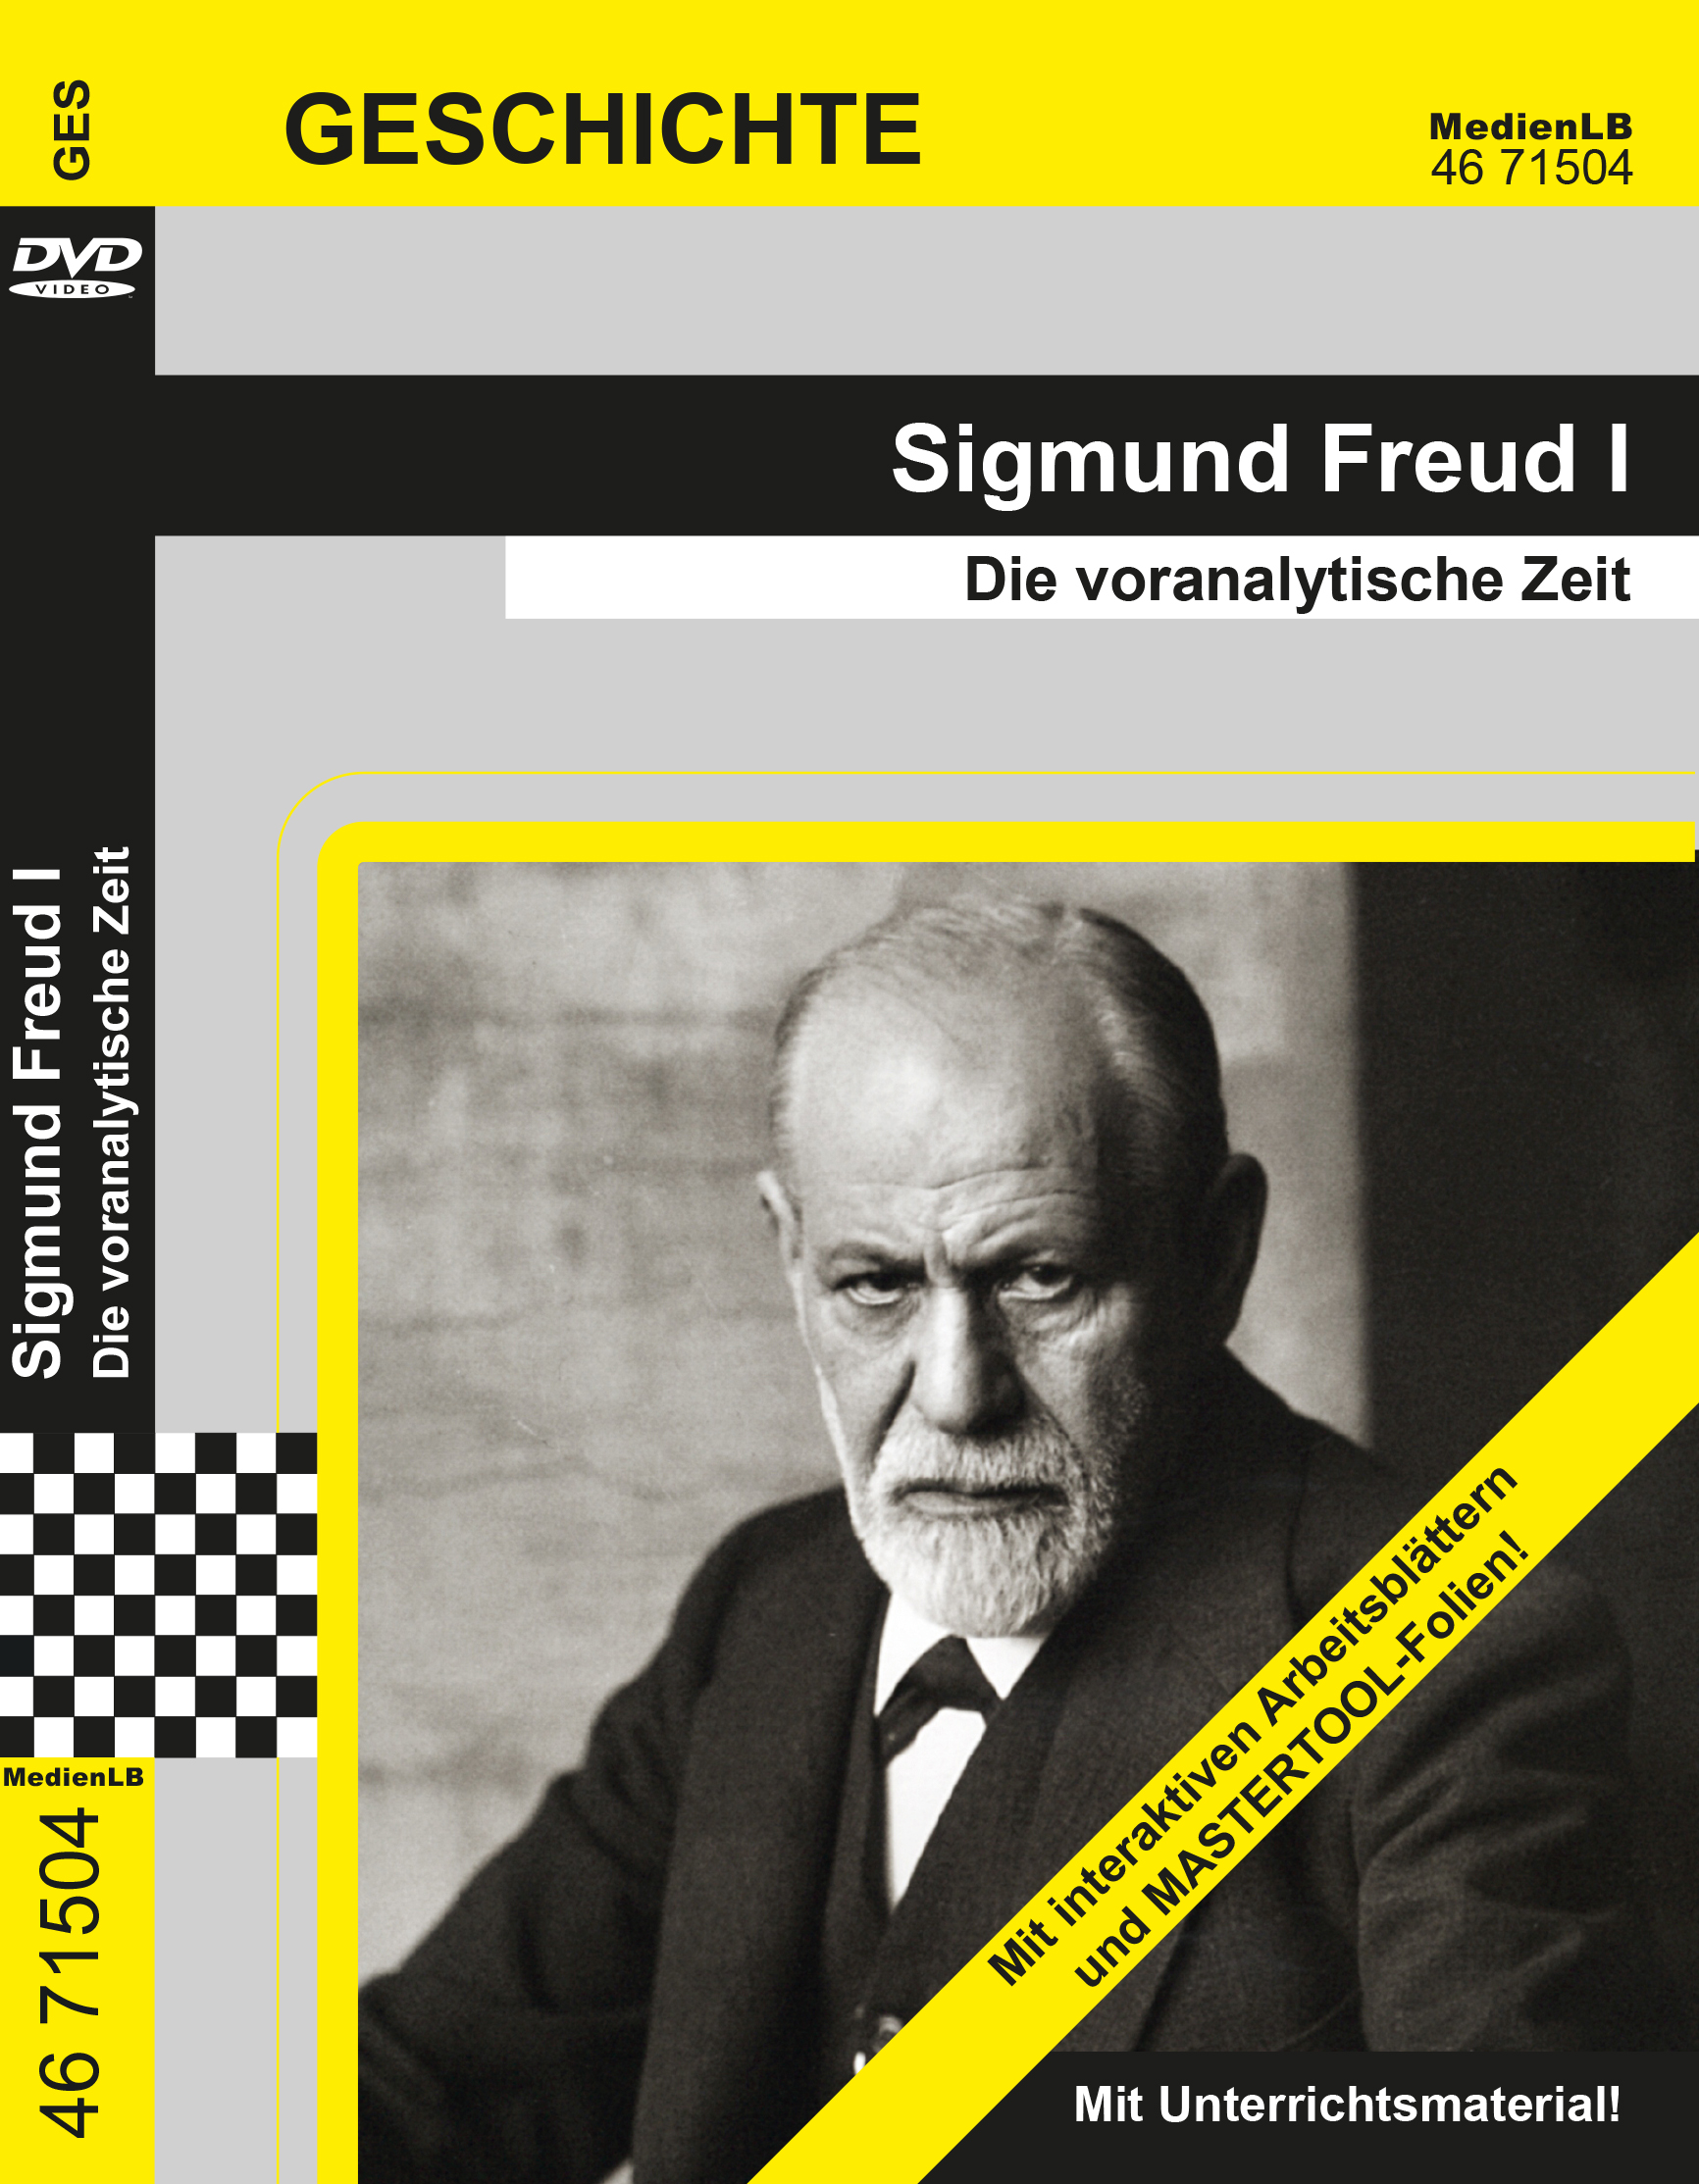 sigmund freud research on behavior Freudian psychology is based on the work of sigmund freud (1856-1939) new research suggests we reconsider knee-jerk reactions and focus on change.